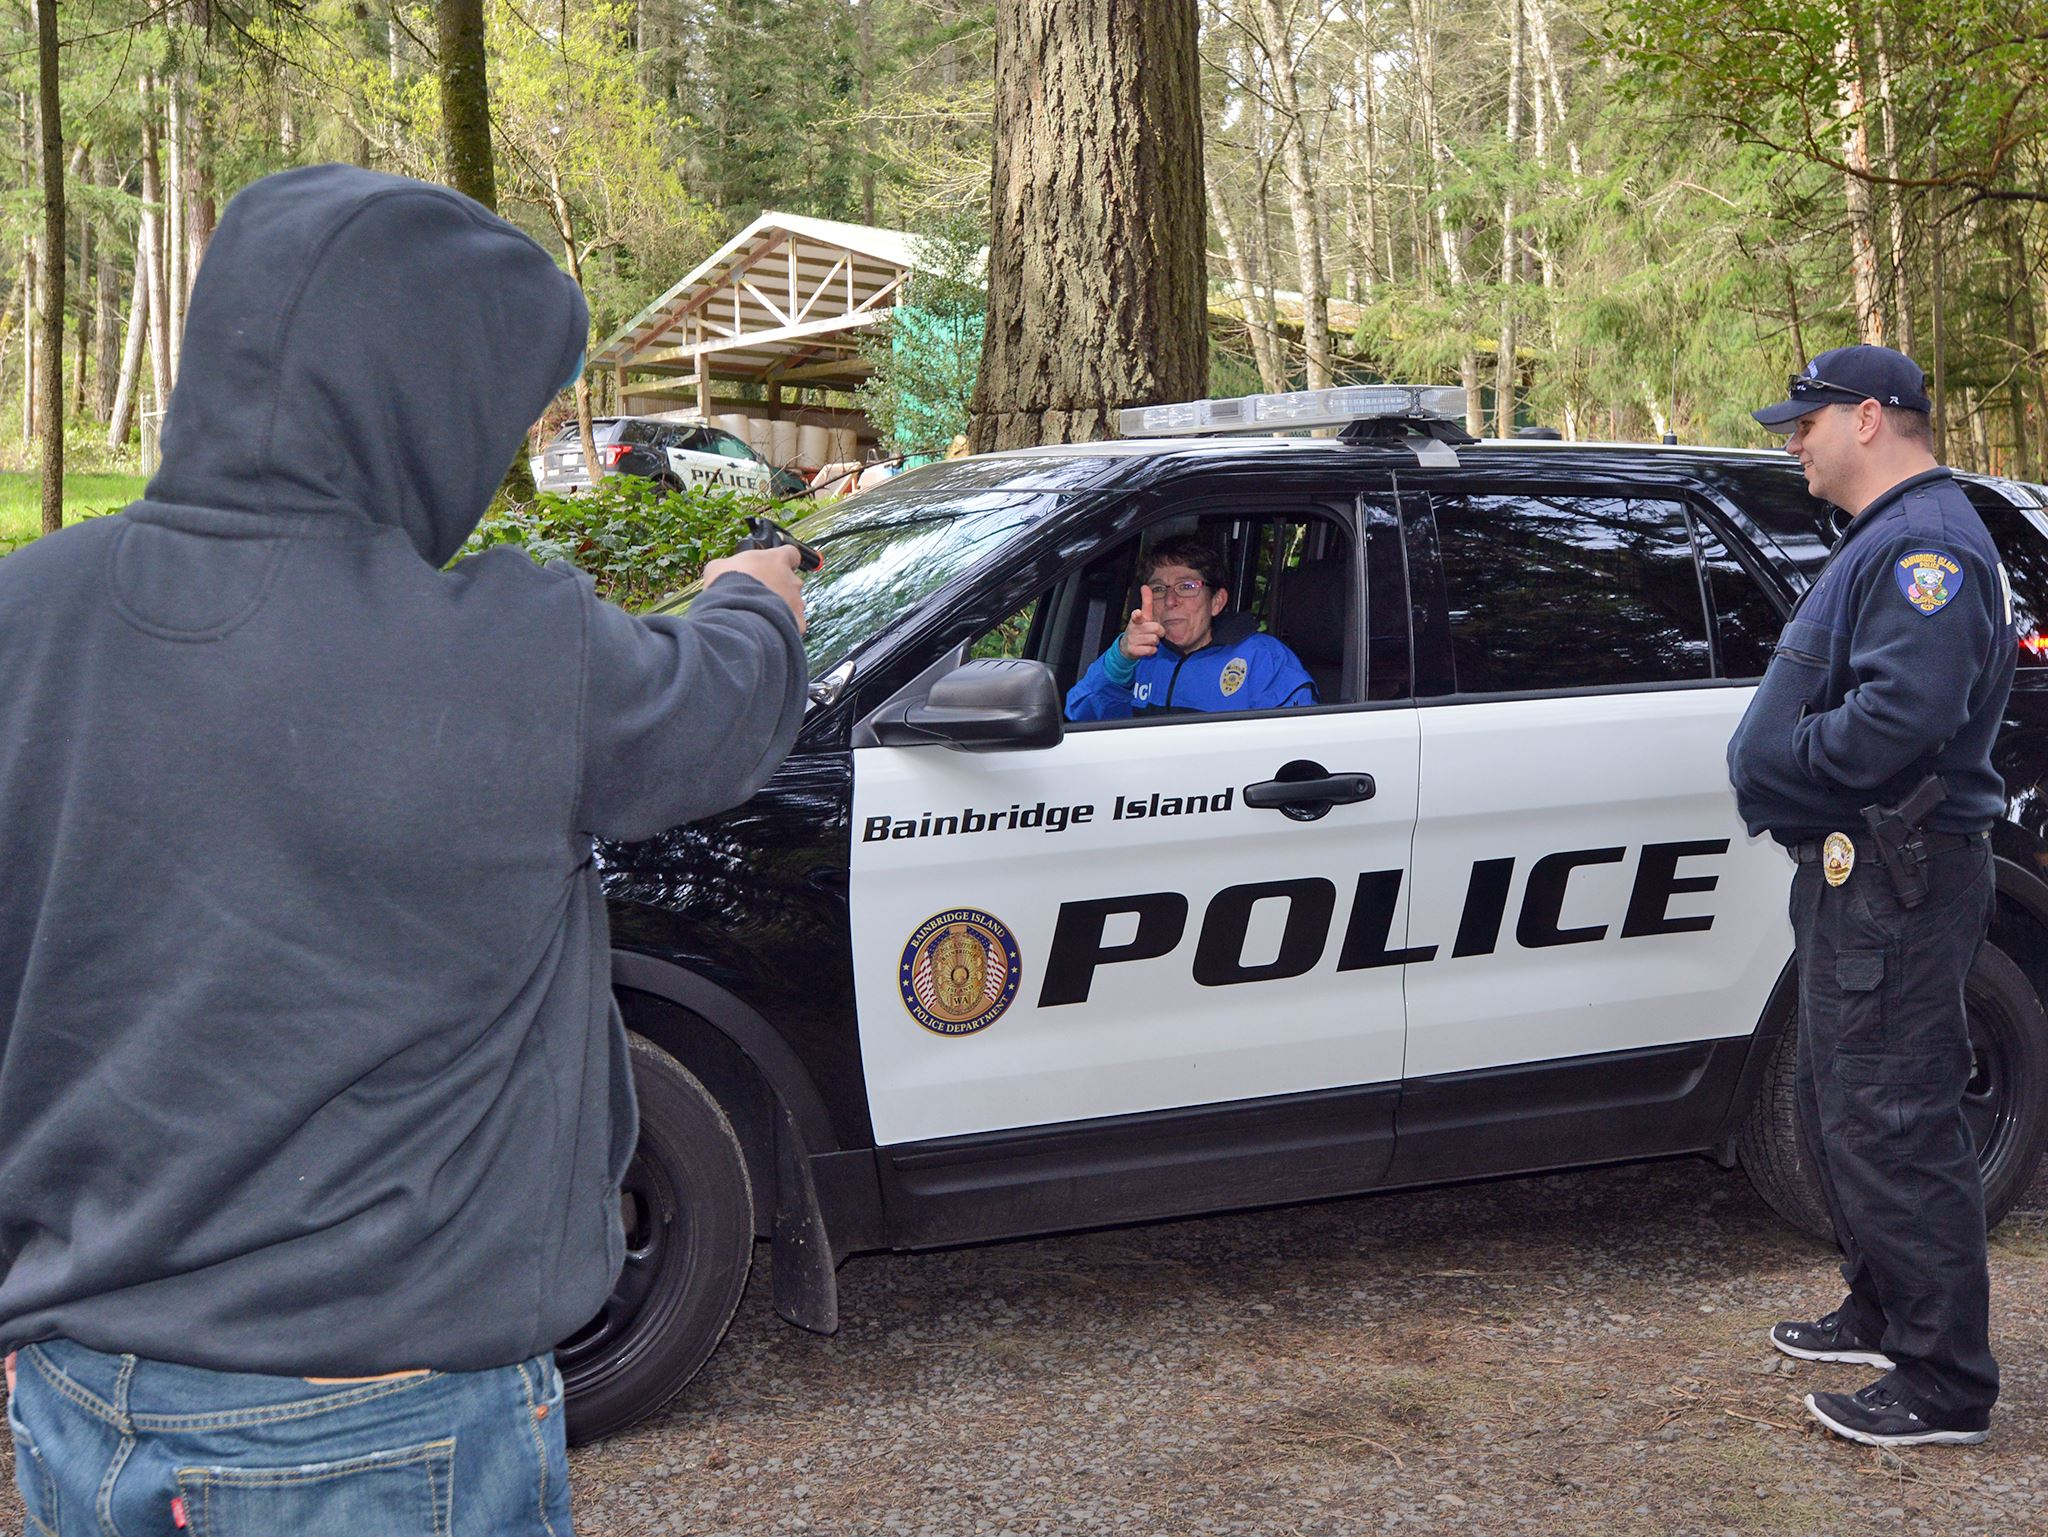 Mock standoff between hooded figure with toy gun and woman in a Police SUV.